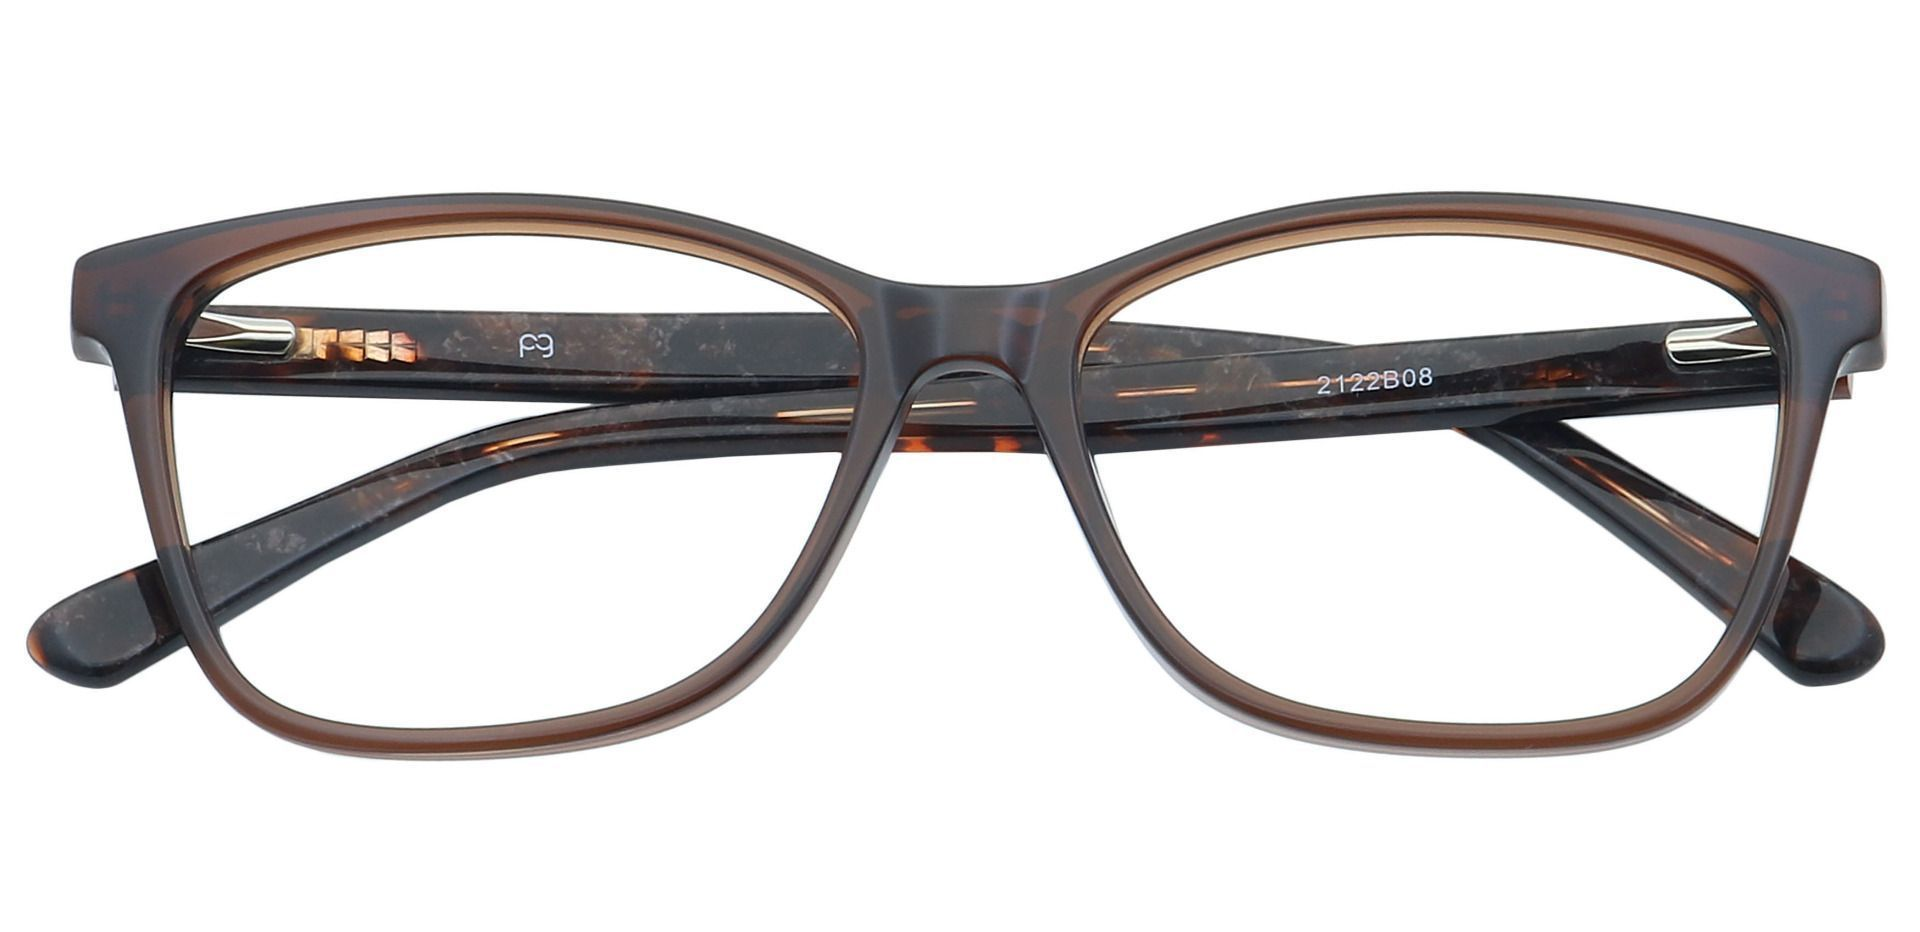 Casper Rectangle Blue Light Blocking Glasses - Brown